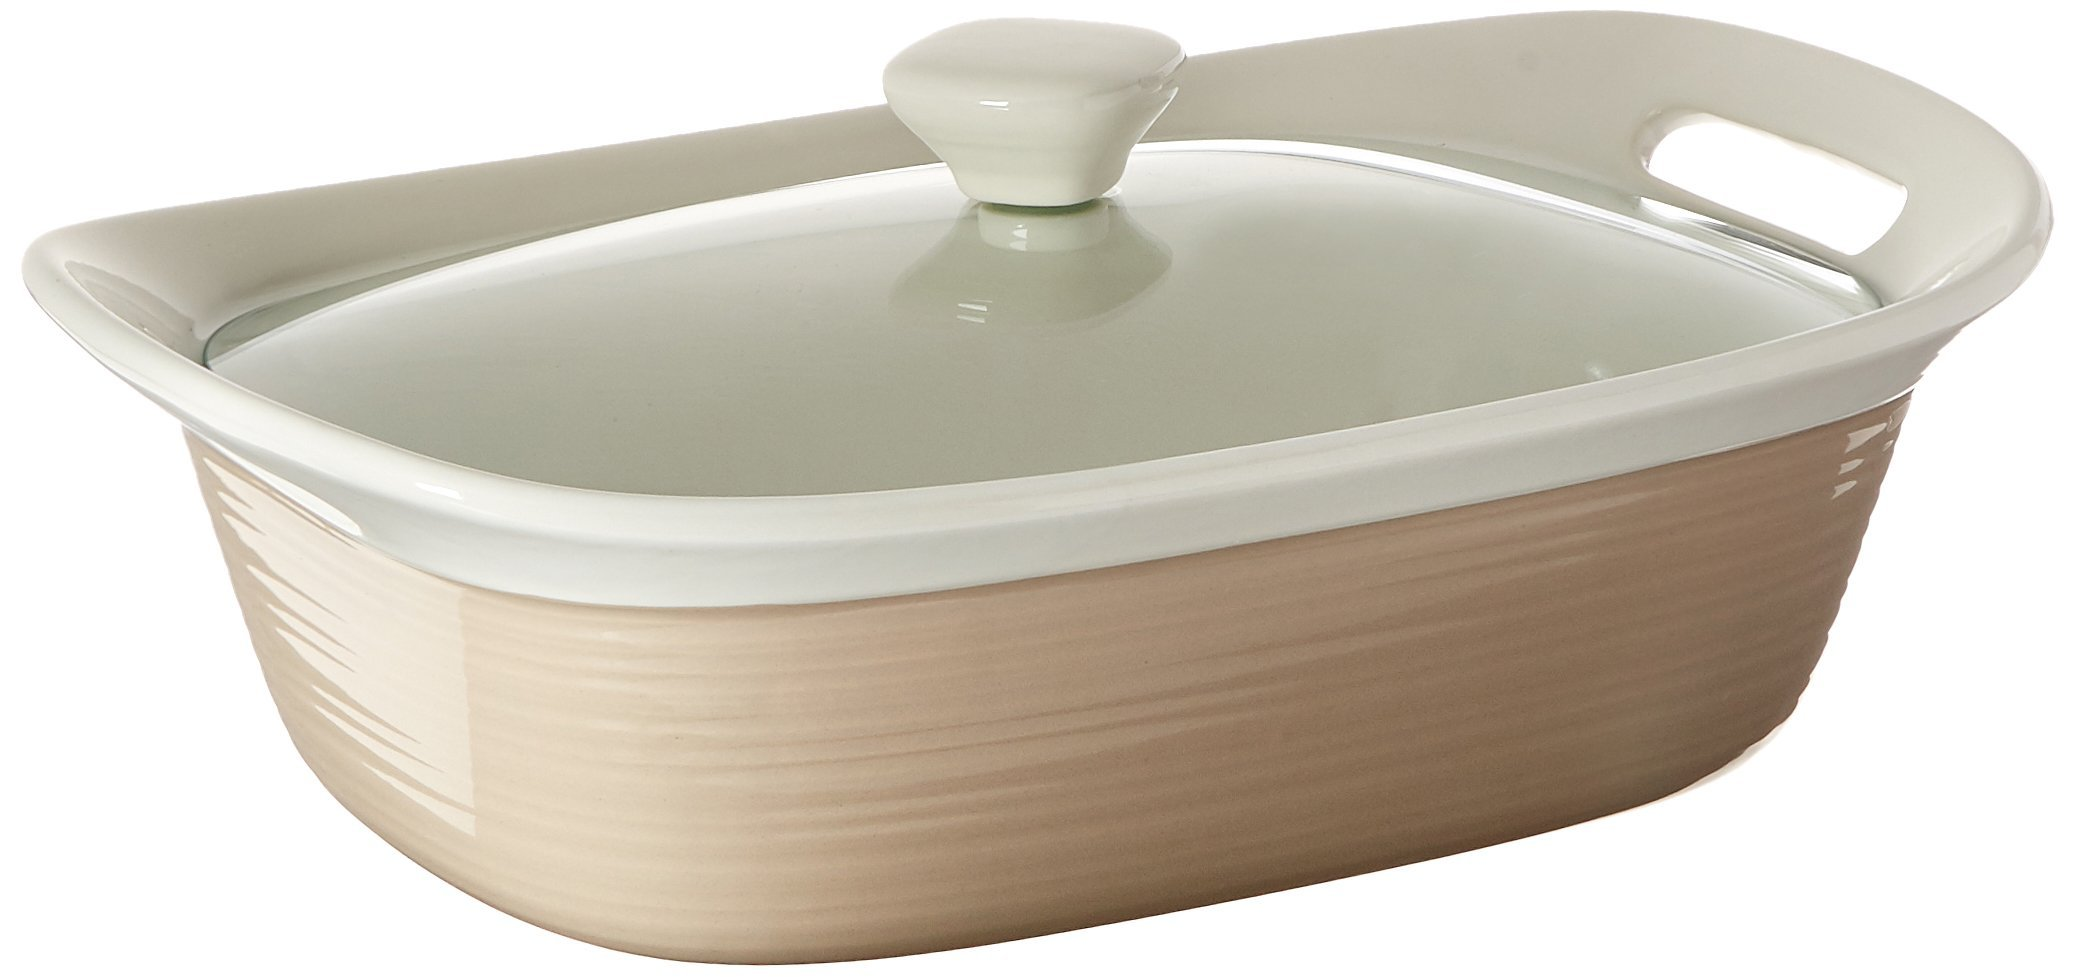 CorningWare Etch 2.5 quart Oblong Dish with Glass Cover in Sand